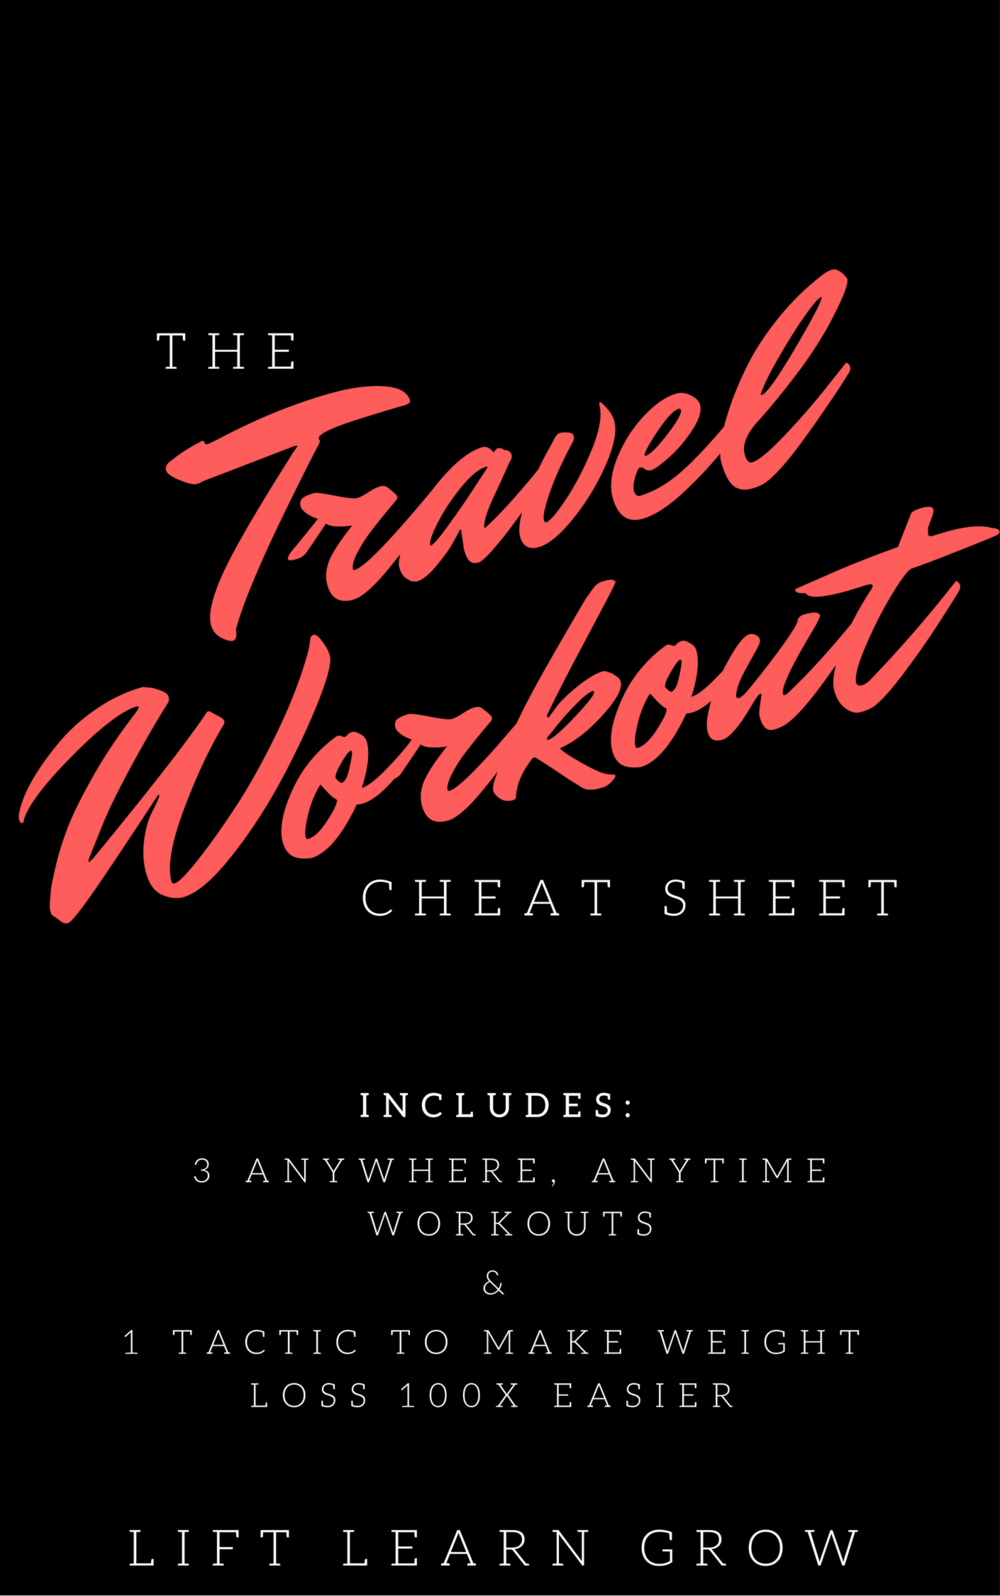 Travel Workout Cheat Sheet.png